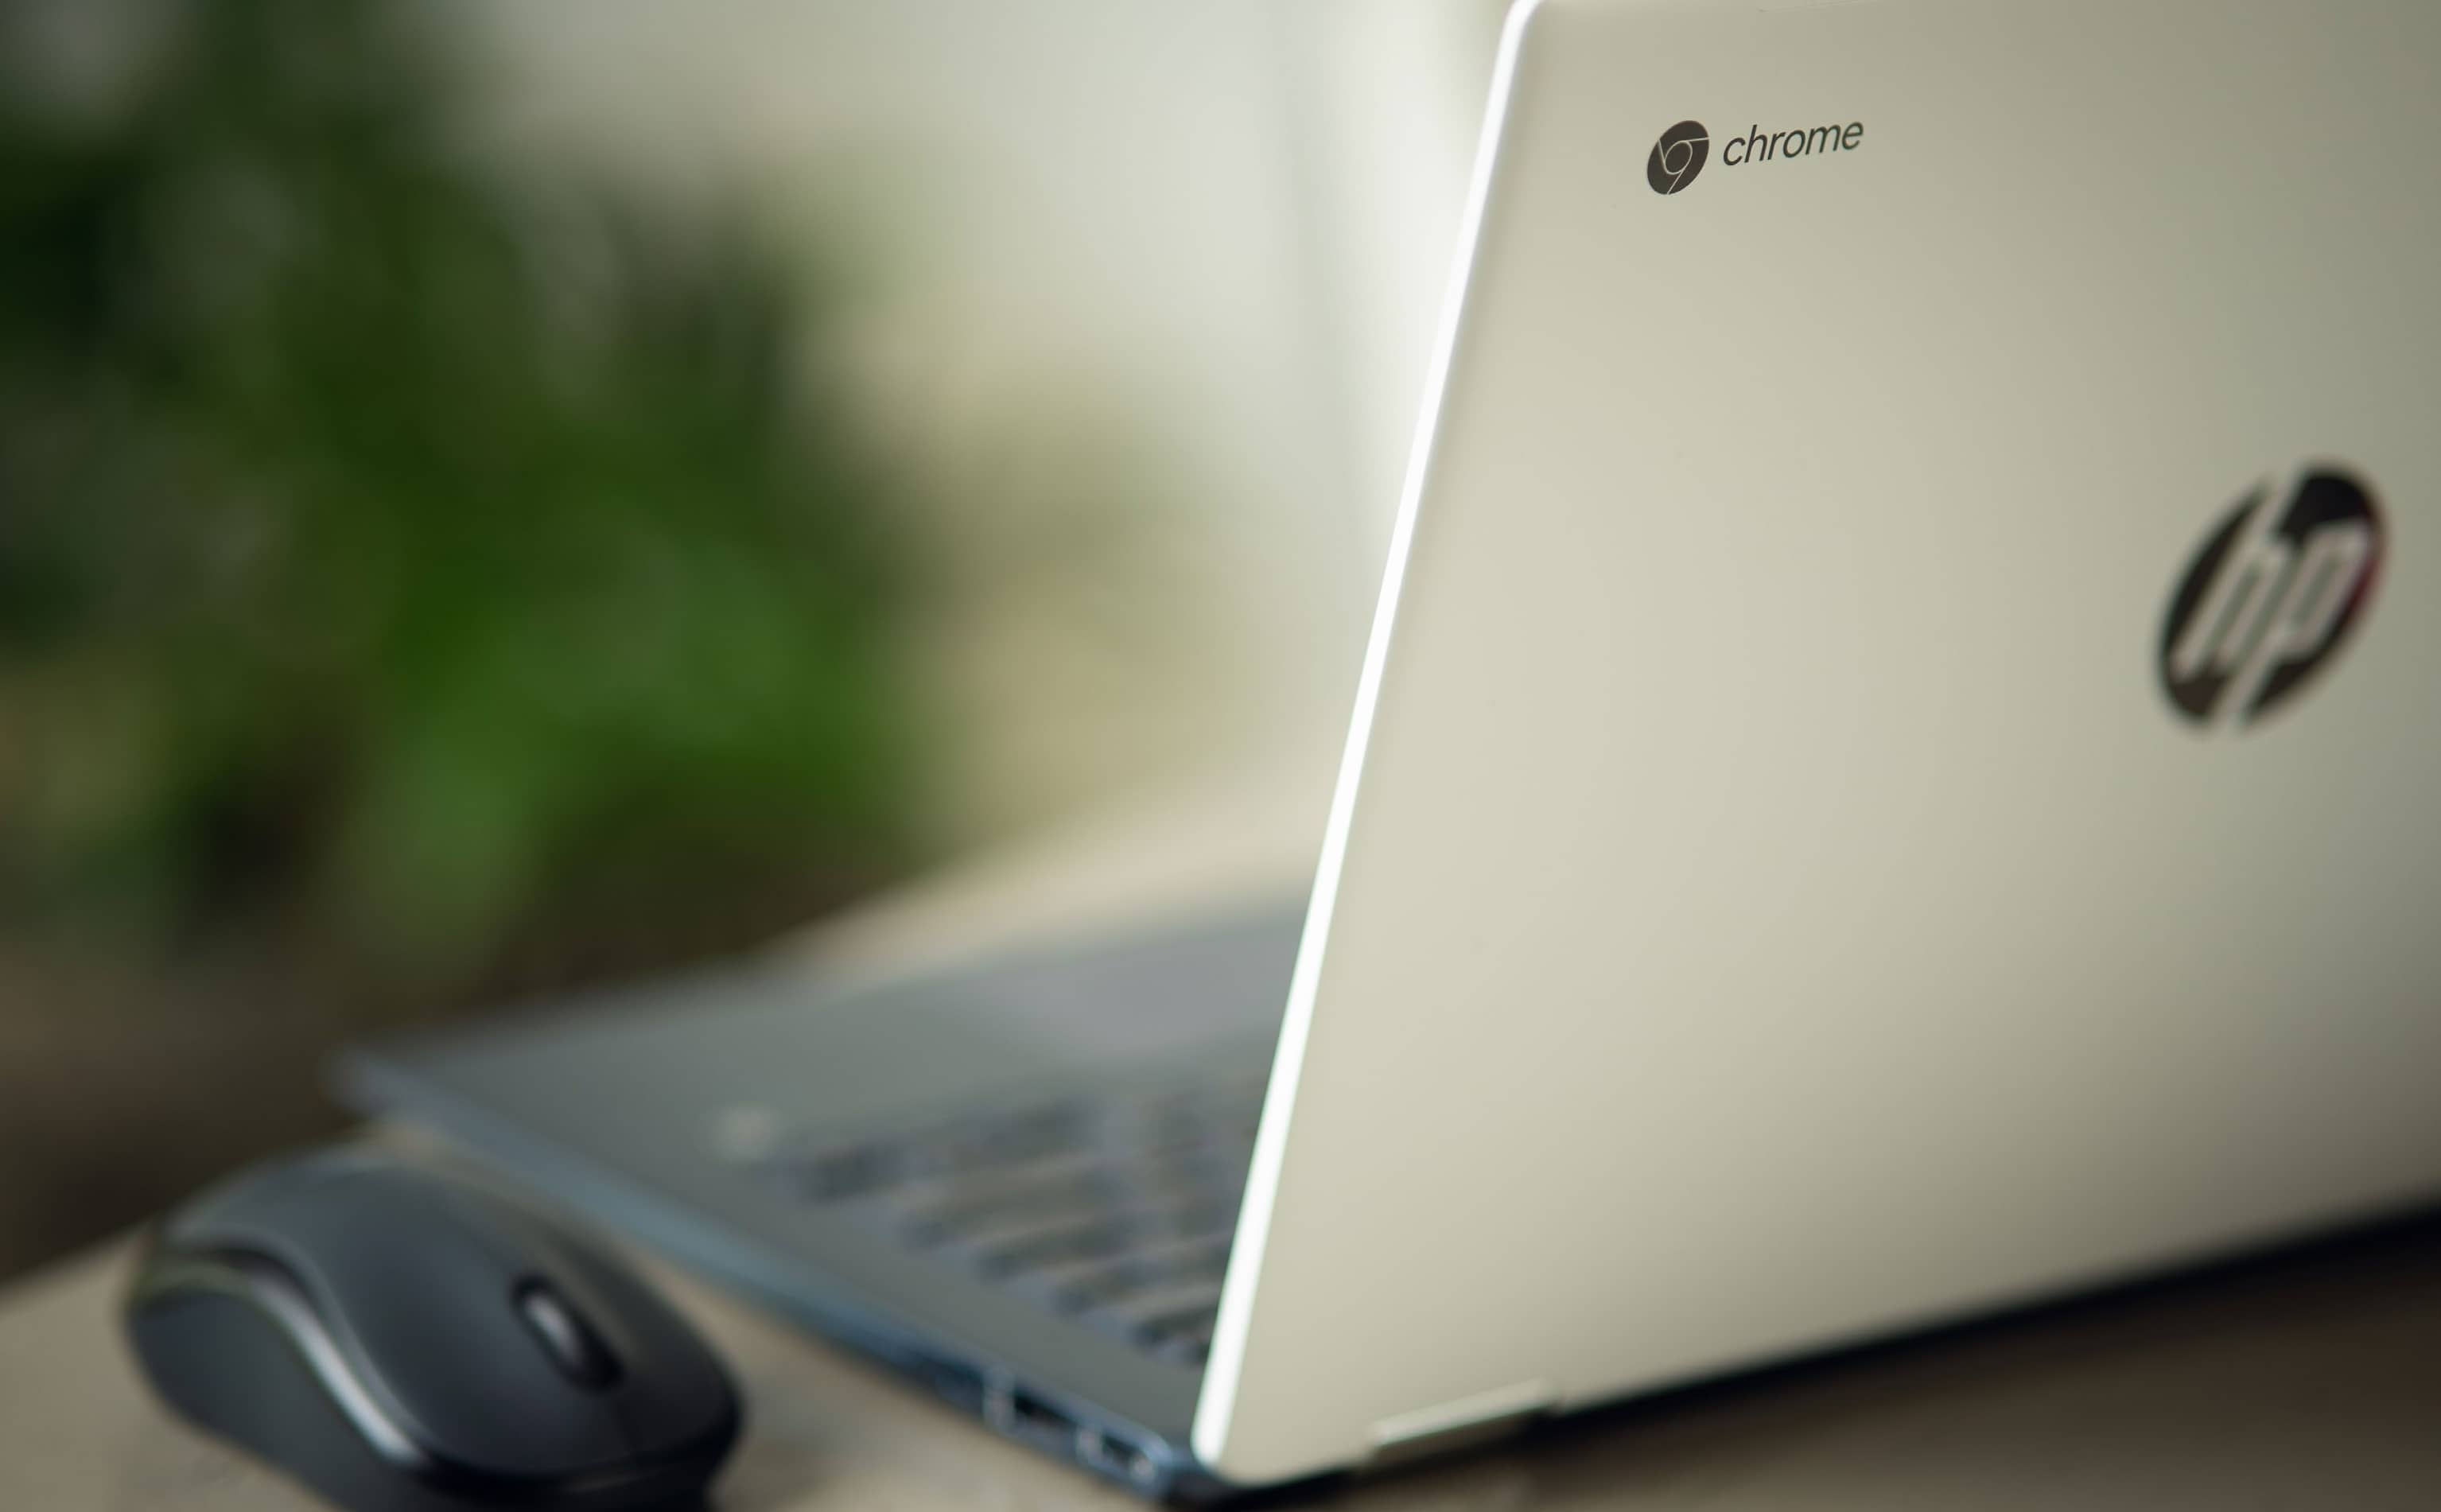 IS THIS CHROMEBOOK ABOUT TO DIE? WHY GOOGLE'S EXPIRATION DATES MATTER